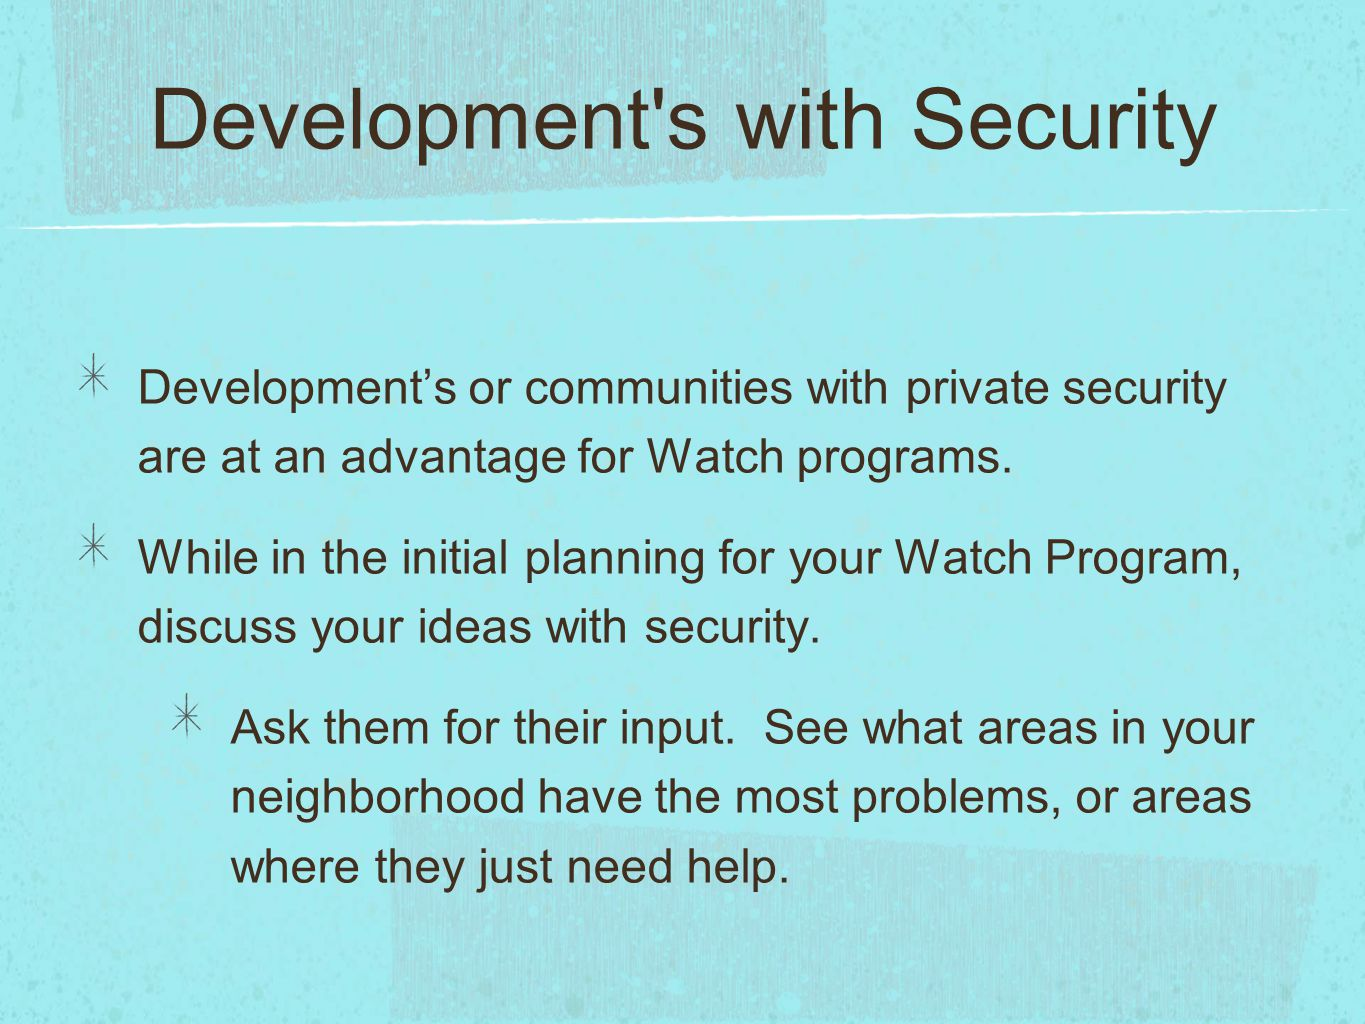 Development's or communities with private security are at an advantage for Watch programs.